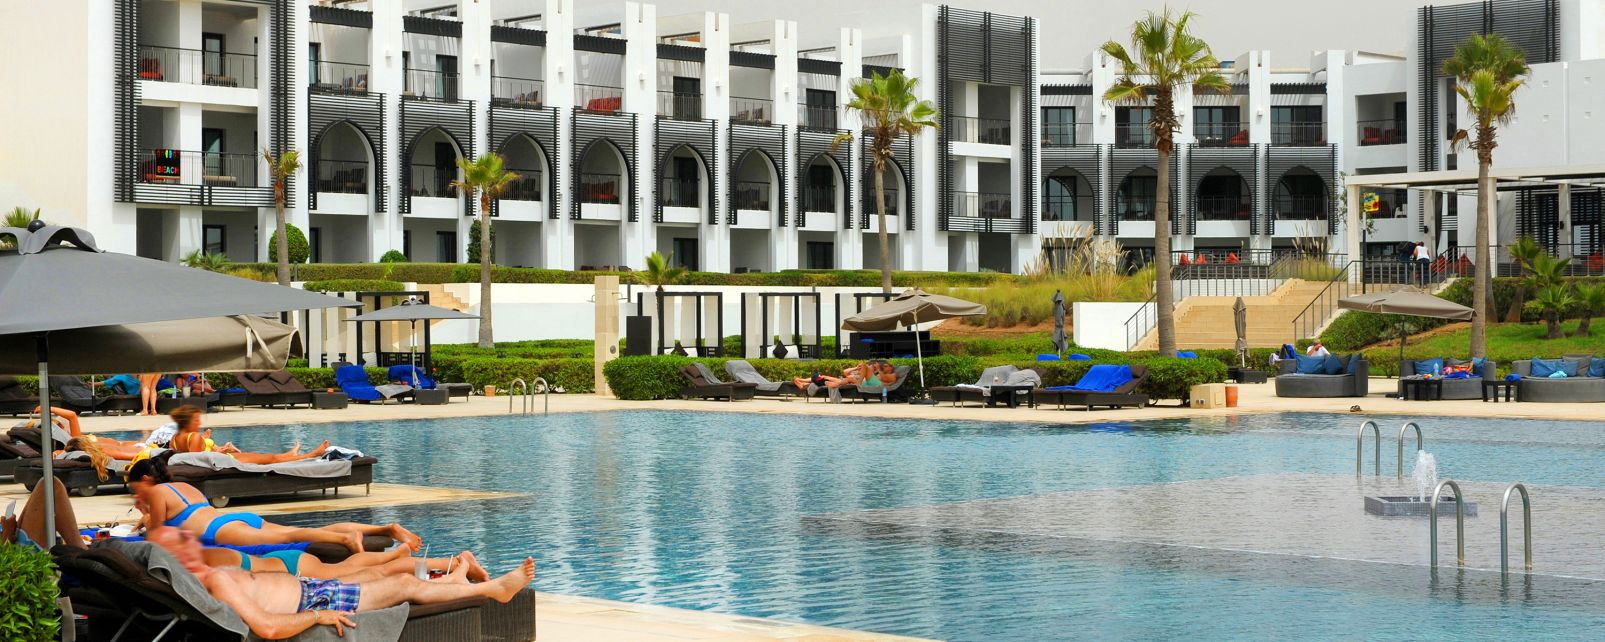 Hotel Sofitel Agadir Thalassa Sea and Spa